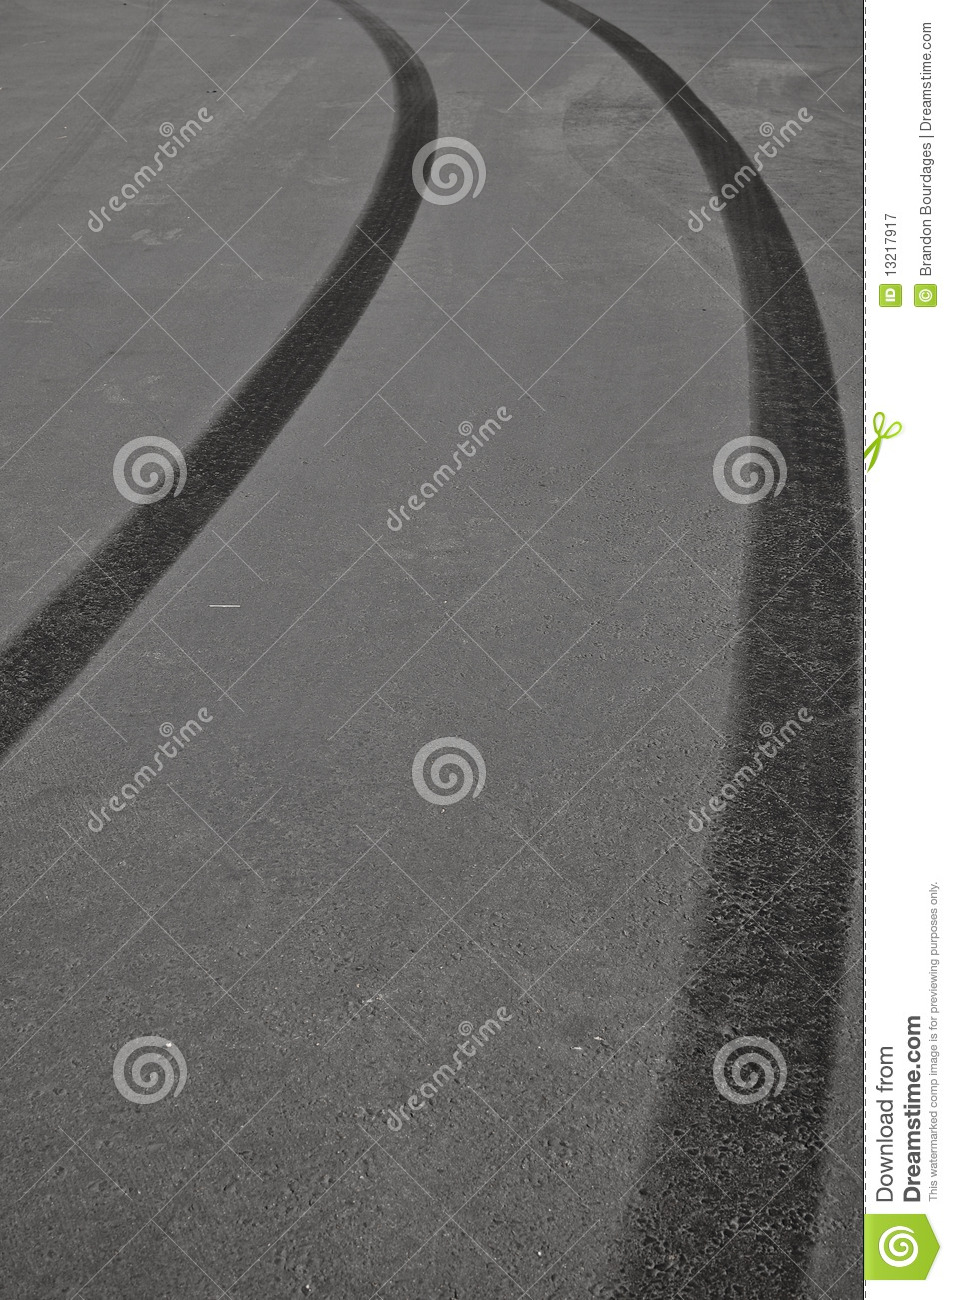 How To Read A Tire >> Tire Skid Marks Royalty Free Stock Photography - Image ...